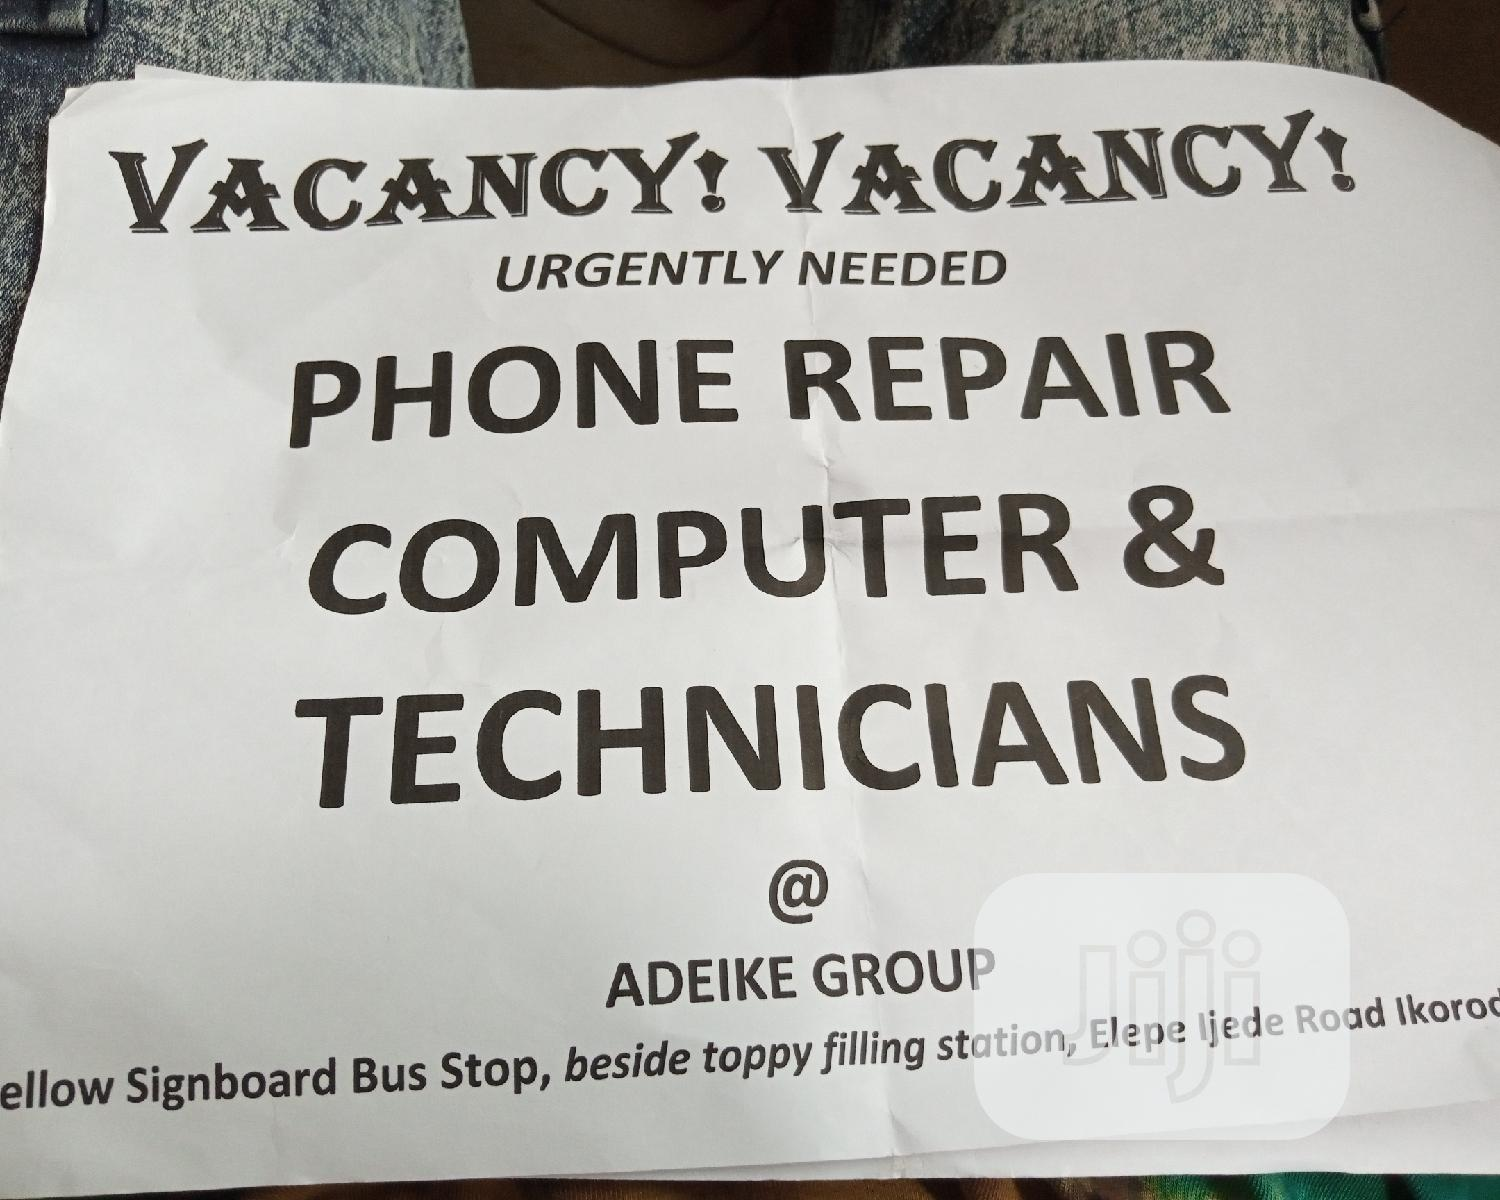 Phone Repair, Computer And Technicians